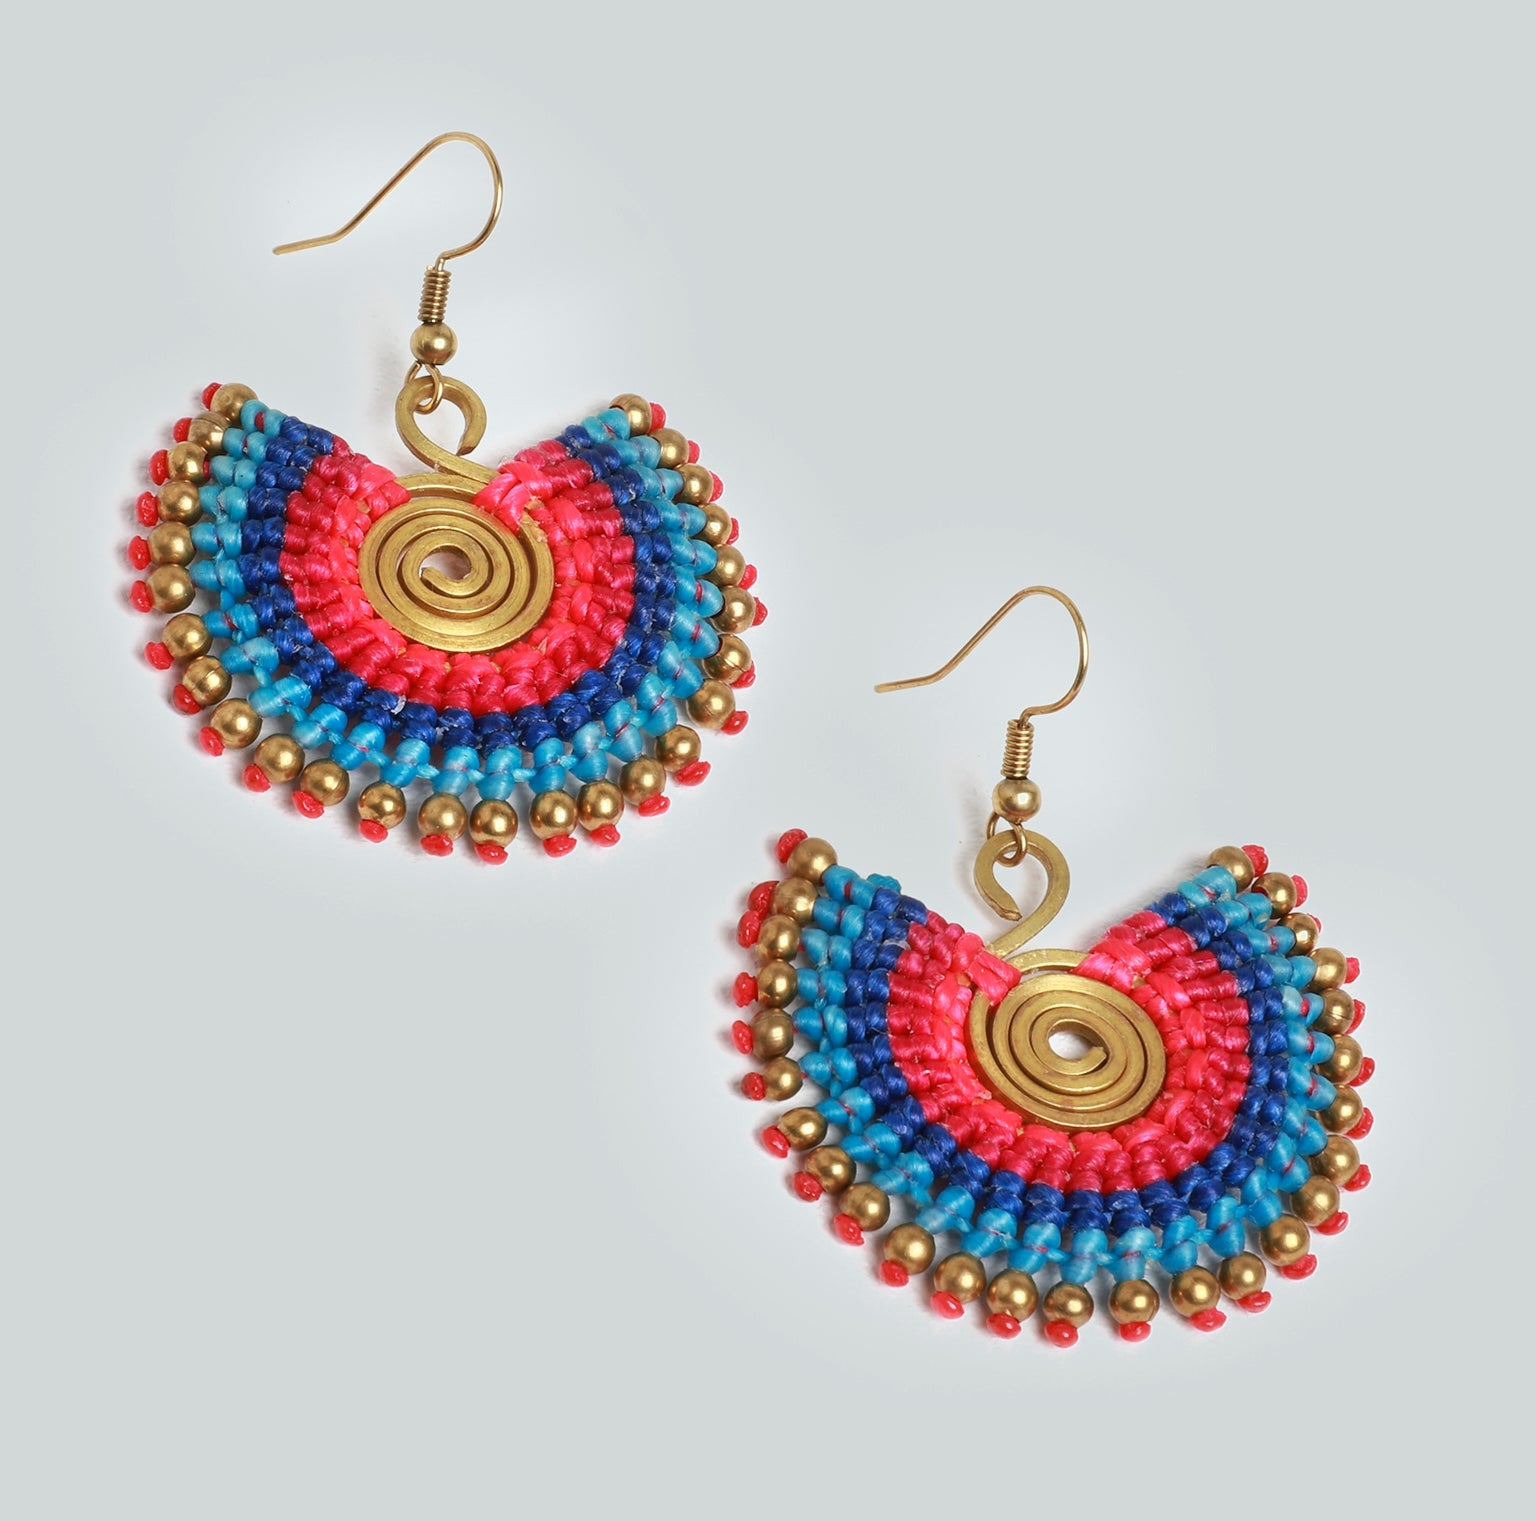 Statement Earrings in Brights | Betsy & Floss